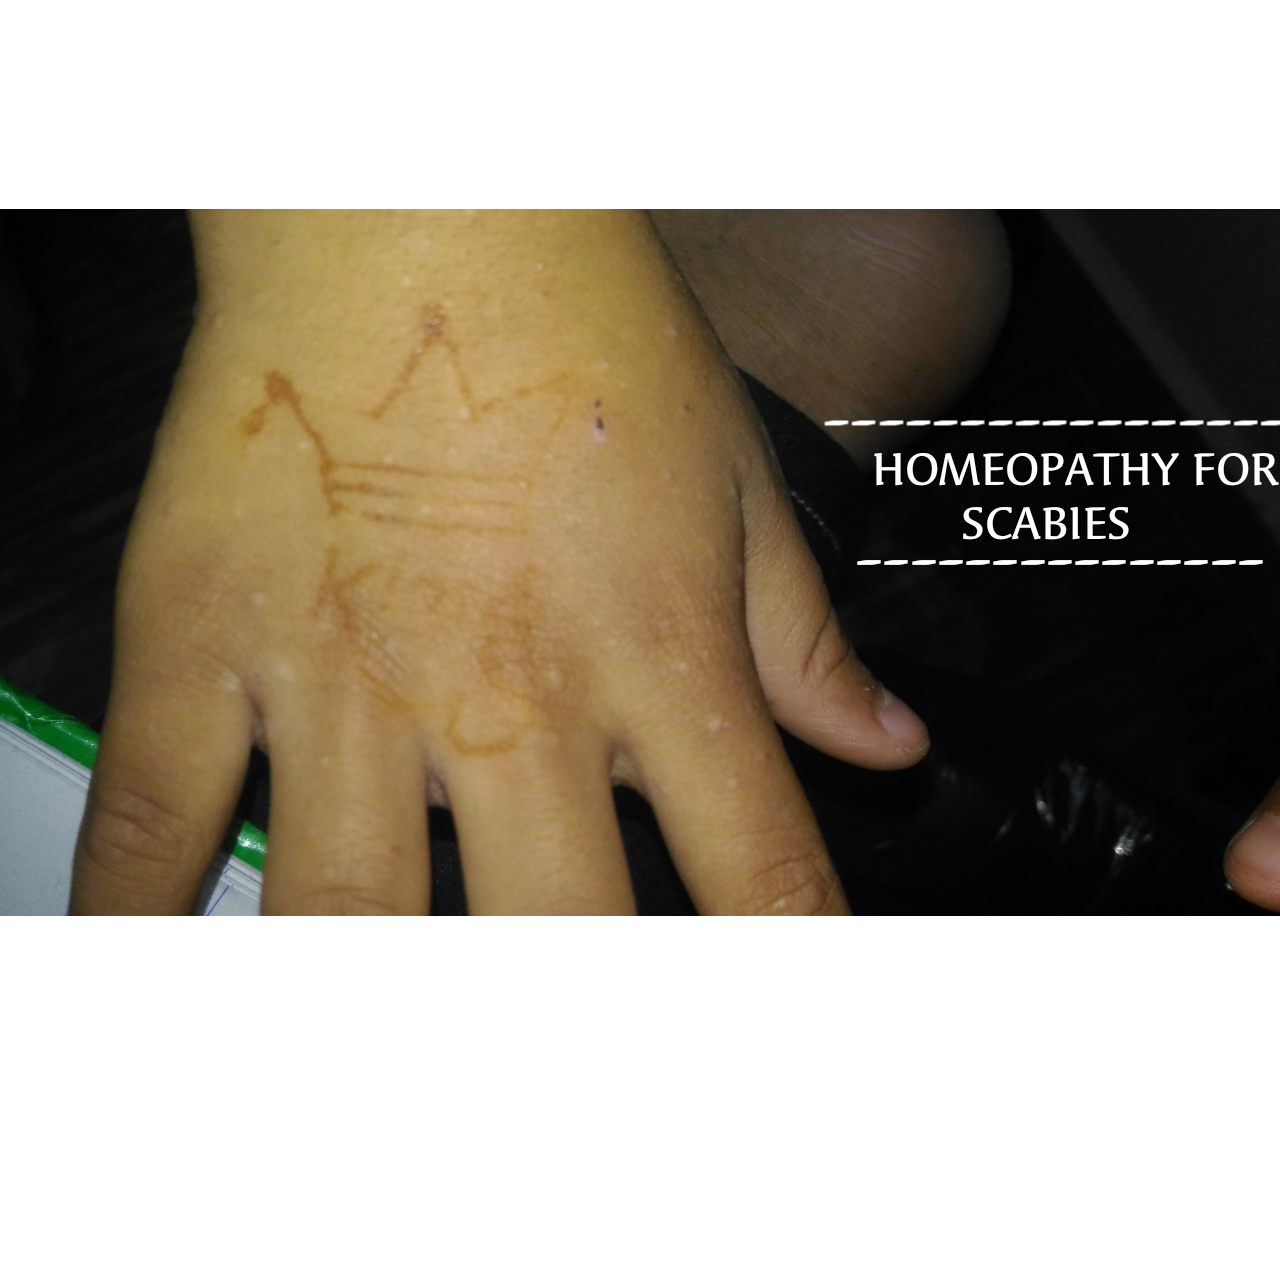 Top 4 Homeopathic Remedy For Scabies All About Scabies Homeopathy